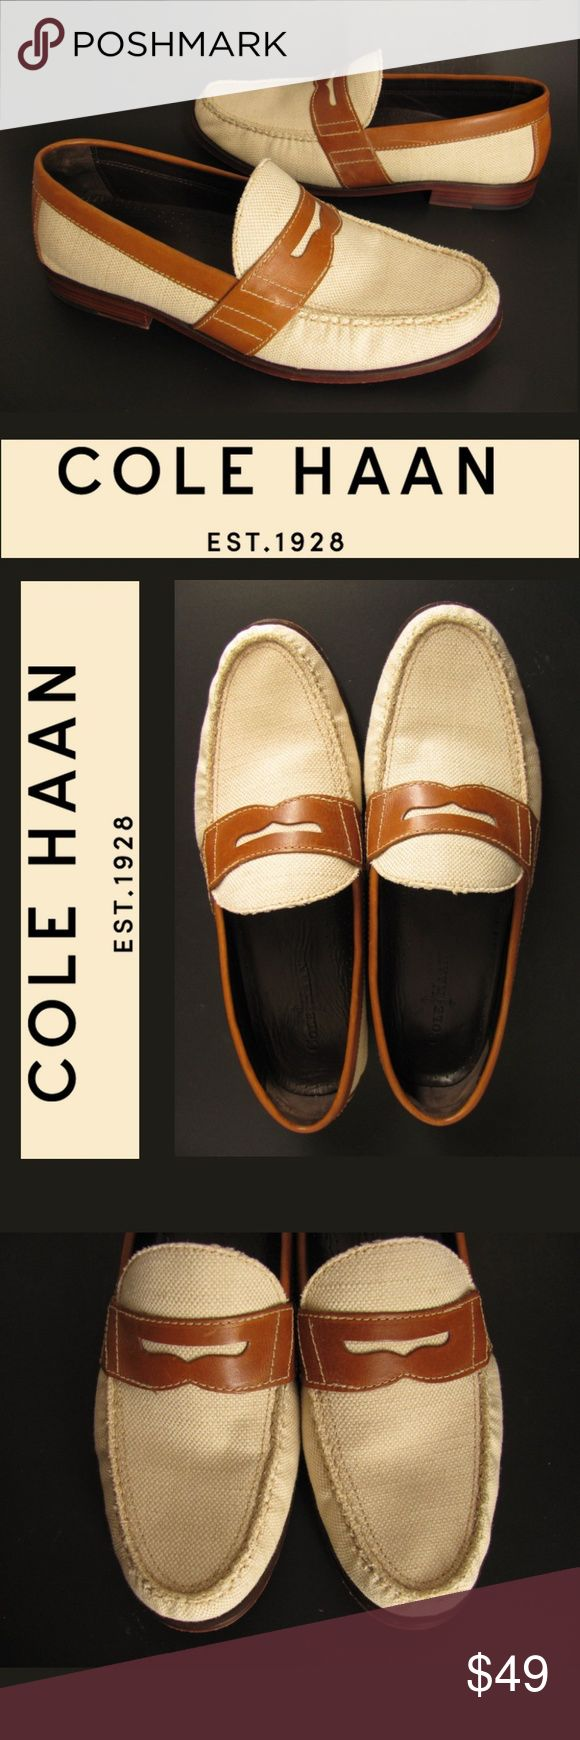 "Cole Haan Penny Loafers Mens 12 Beige Canvas Brown Be a sharp dressed man in these two tone penny loafers by Cole Haan. These handsome shoes feature beige canvas uppers with saddle brown leather trim. They have non slip heels and sole dots. They offer slip on Nike Air comfort and stylish looks for the modern man. Mens size 12 M. Excellent, Very Gently Pre-Loved condition! 11 1/2"" from the toe to the heel 3 1/2"" across the foot ball 1"" heel height 180311-214-Mns Brn 4 Cole Haan Shoes Loafers…"